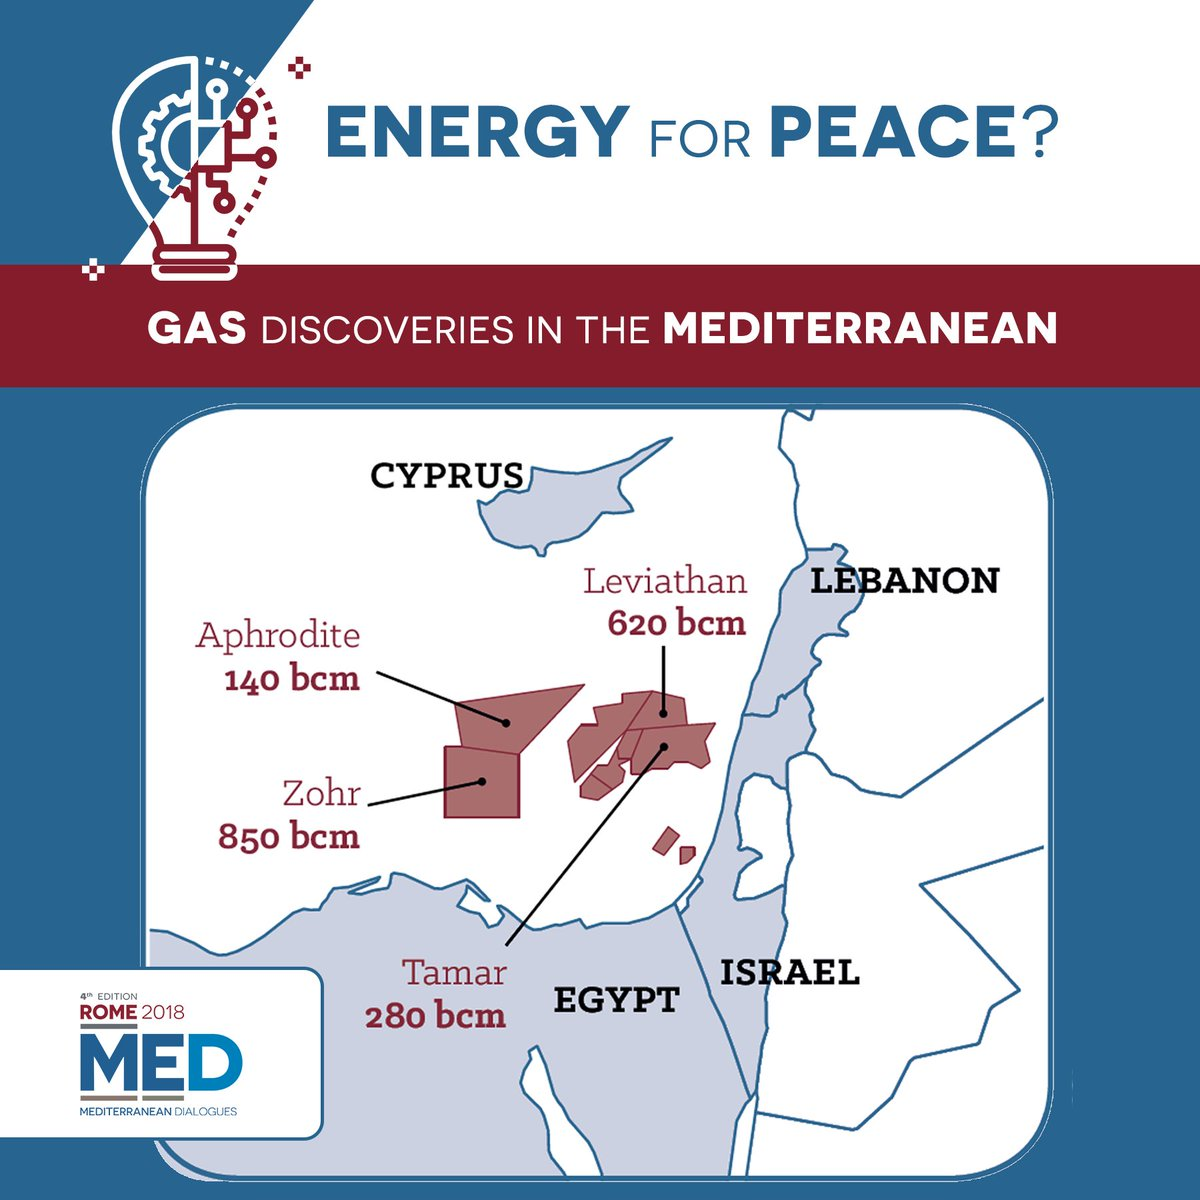 In the Eastern #Mediterranean, a great geopolitical game over natural gas has begun. The significant offshore could result in a factor of stability for the region. See more about one of the #Med2018 main topics → https://t.co/E1puuJc4EQ